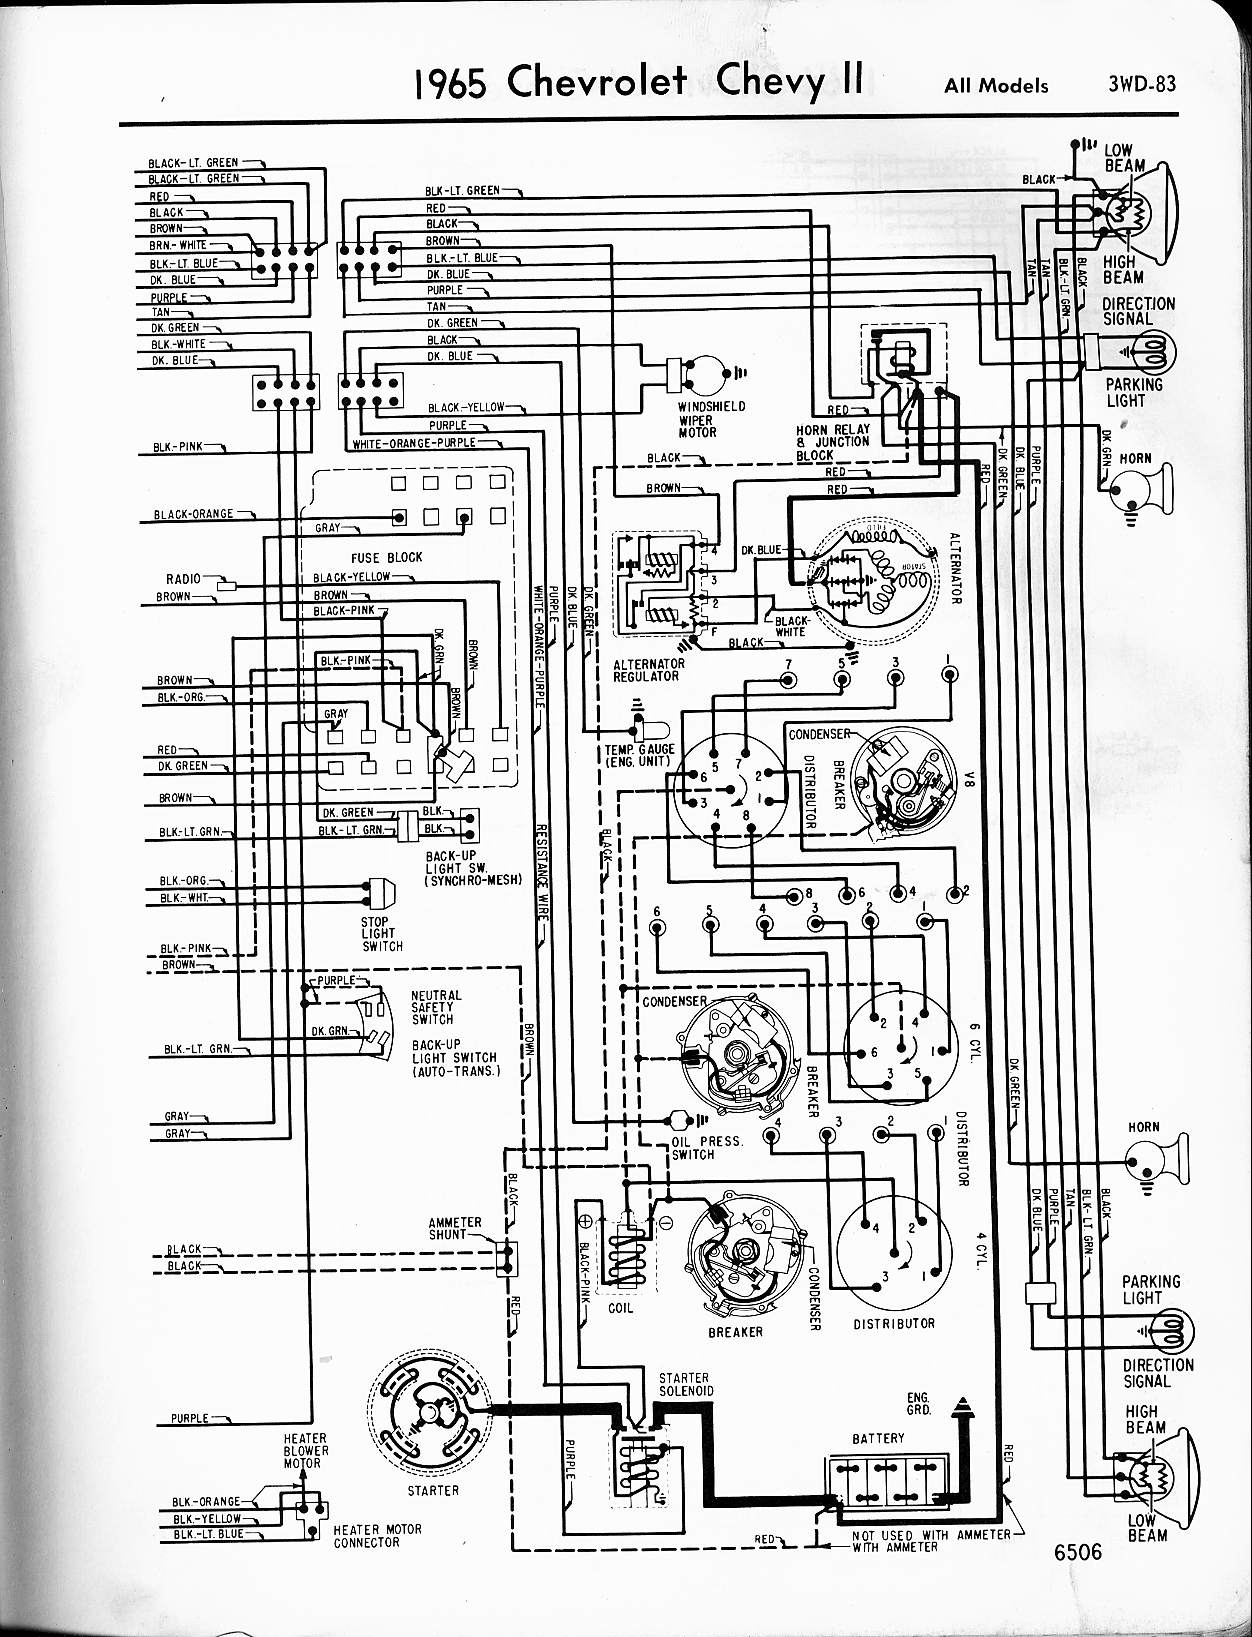 1964 Chevy 2 Wiring Diagram List Of Schematic Circuit Audi Symphony Diagrams Rh Wizard Com